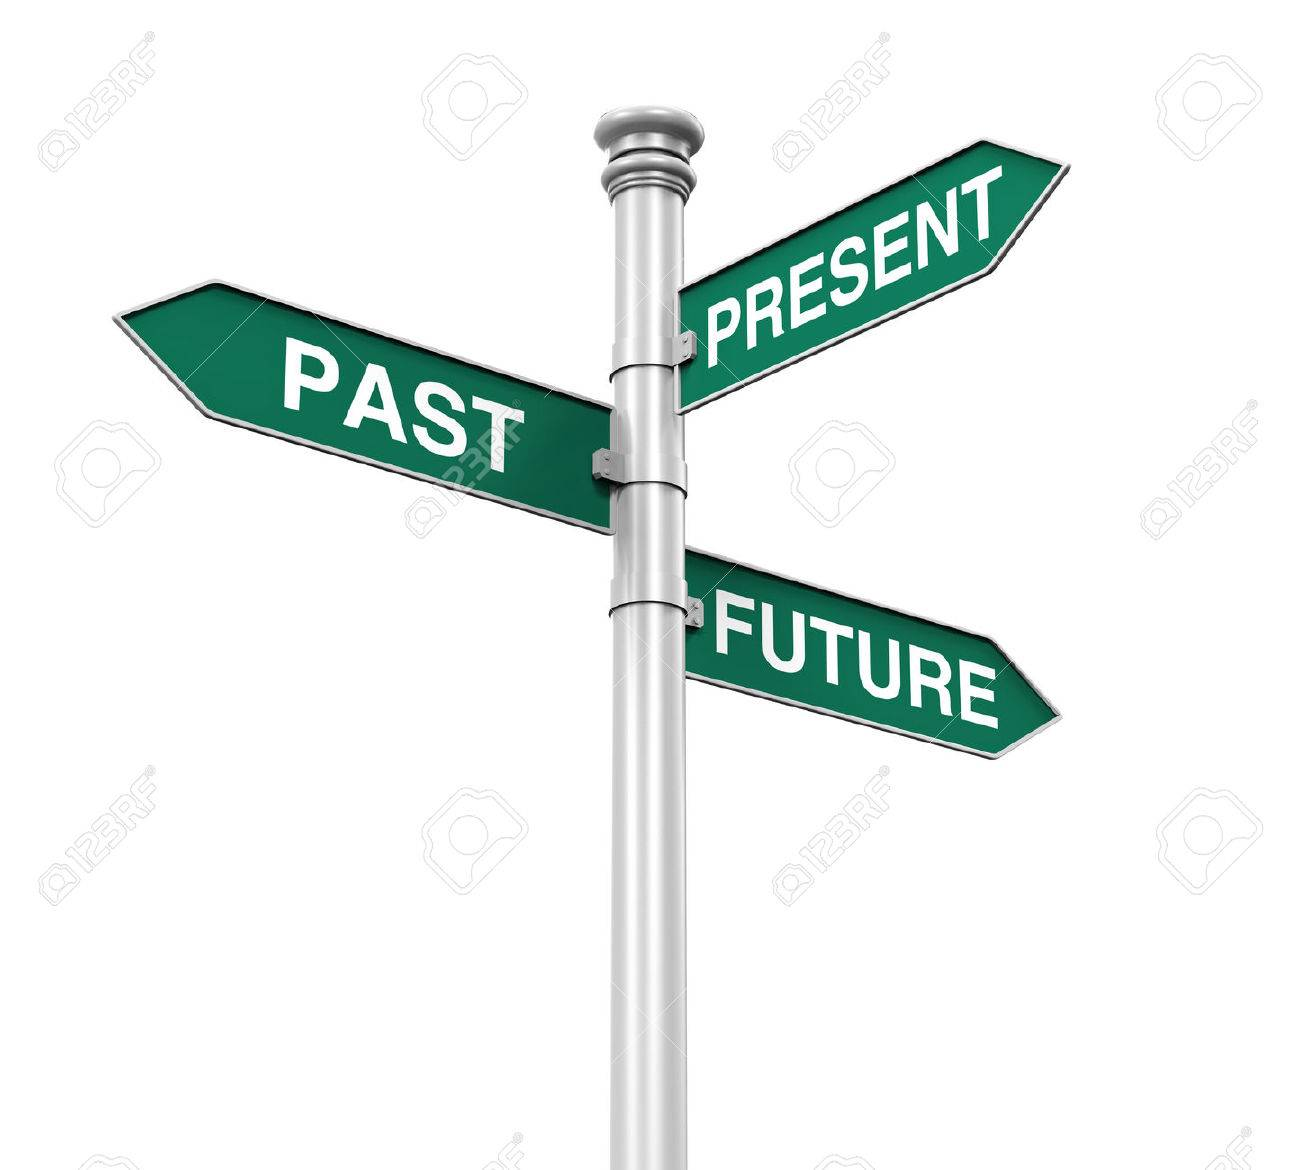 224501 road signs stock illustrations cliparts and royalty free direction sign of past future and present biocorpaavc